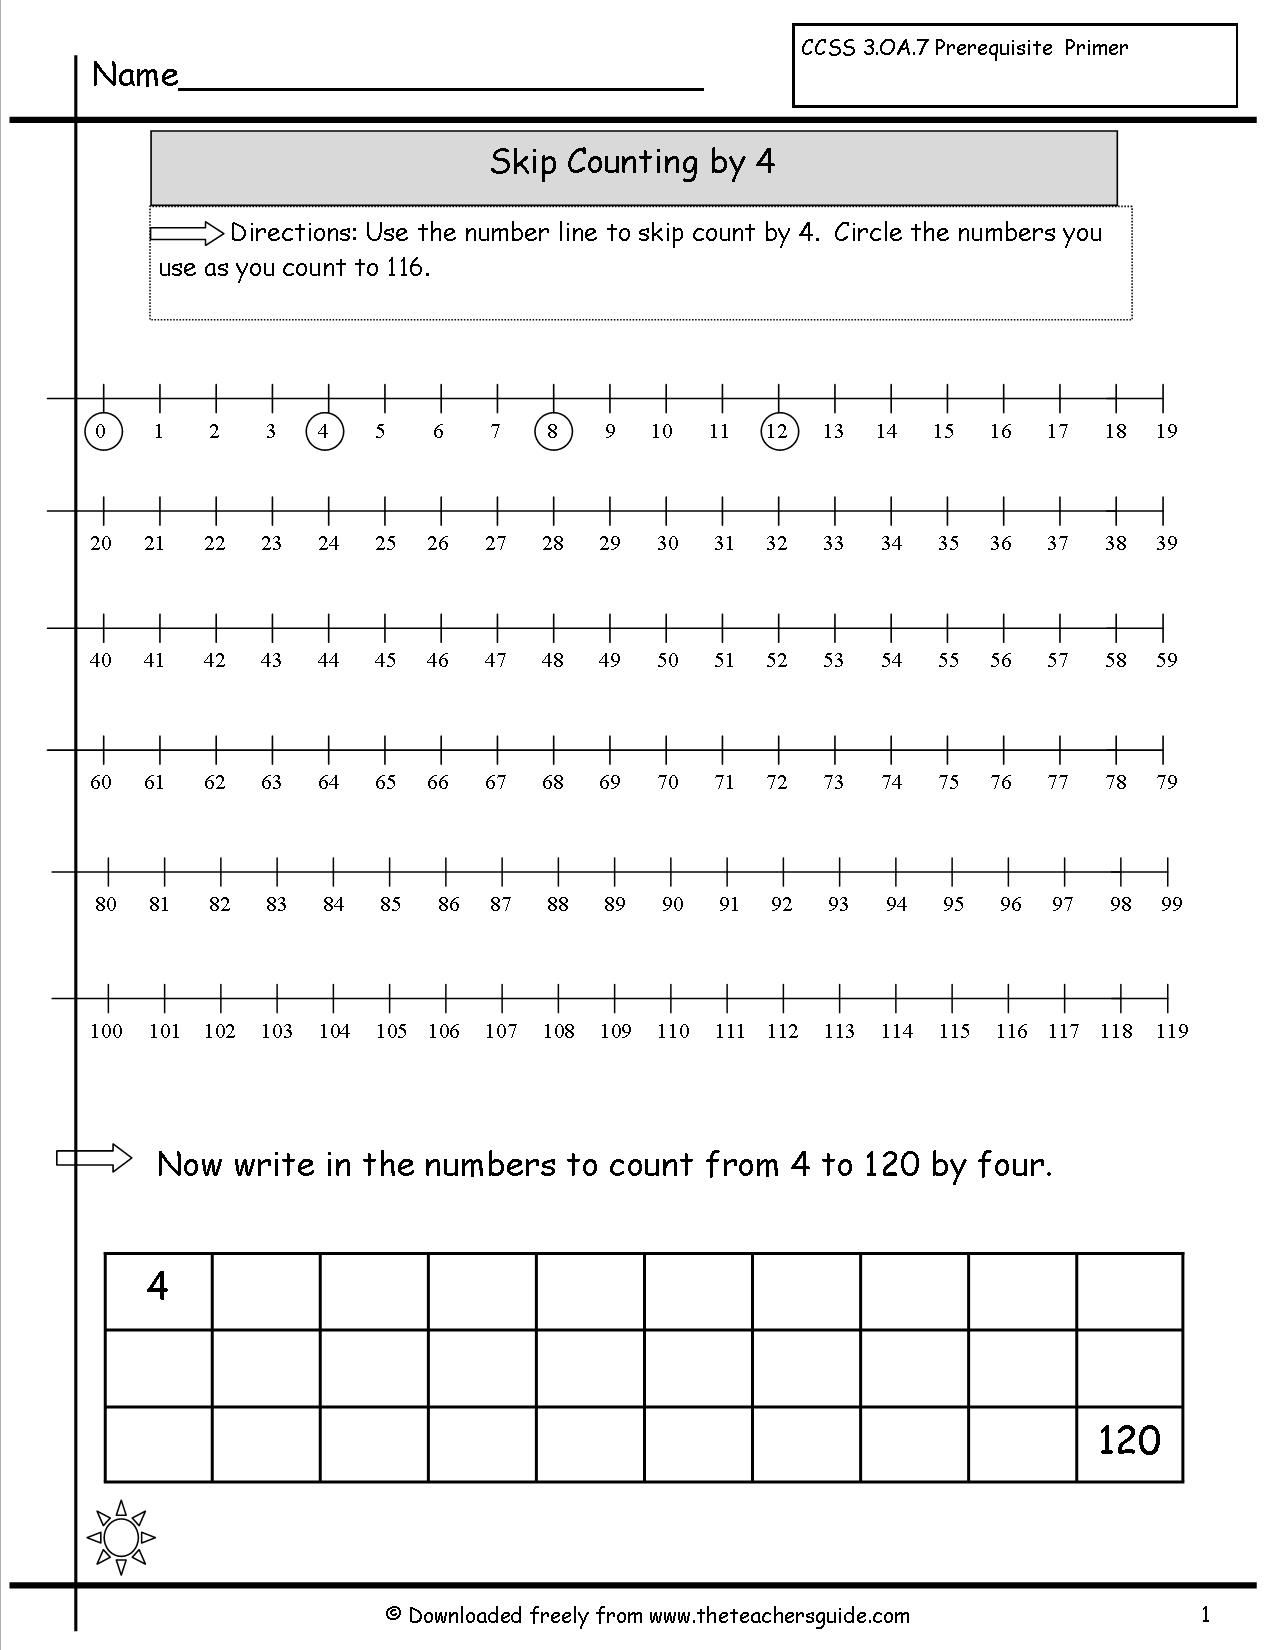 Skipcountingnumberlinebyfour Jpg 1275 1650 Skip Counting Worksheets Counting Worksheets Kids Math Worksheets